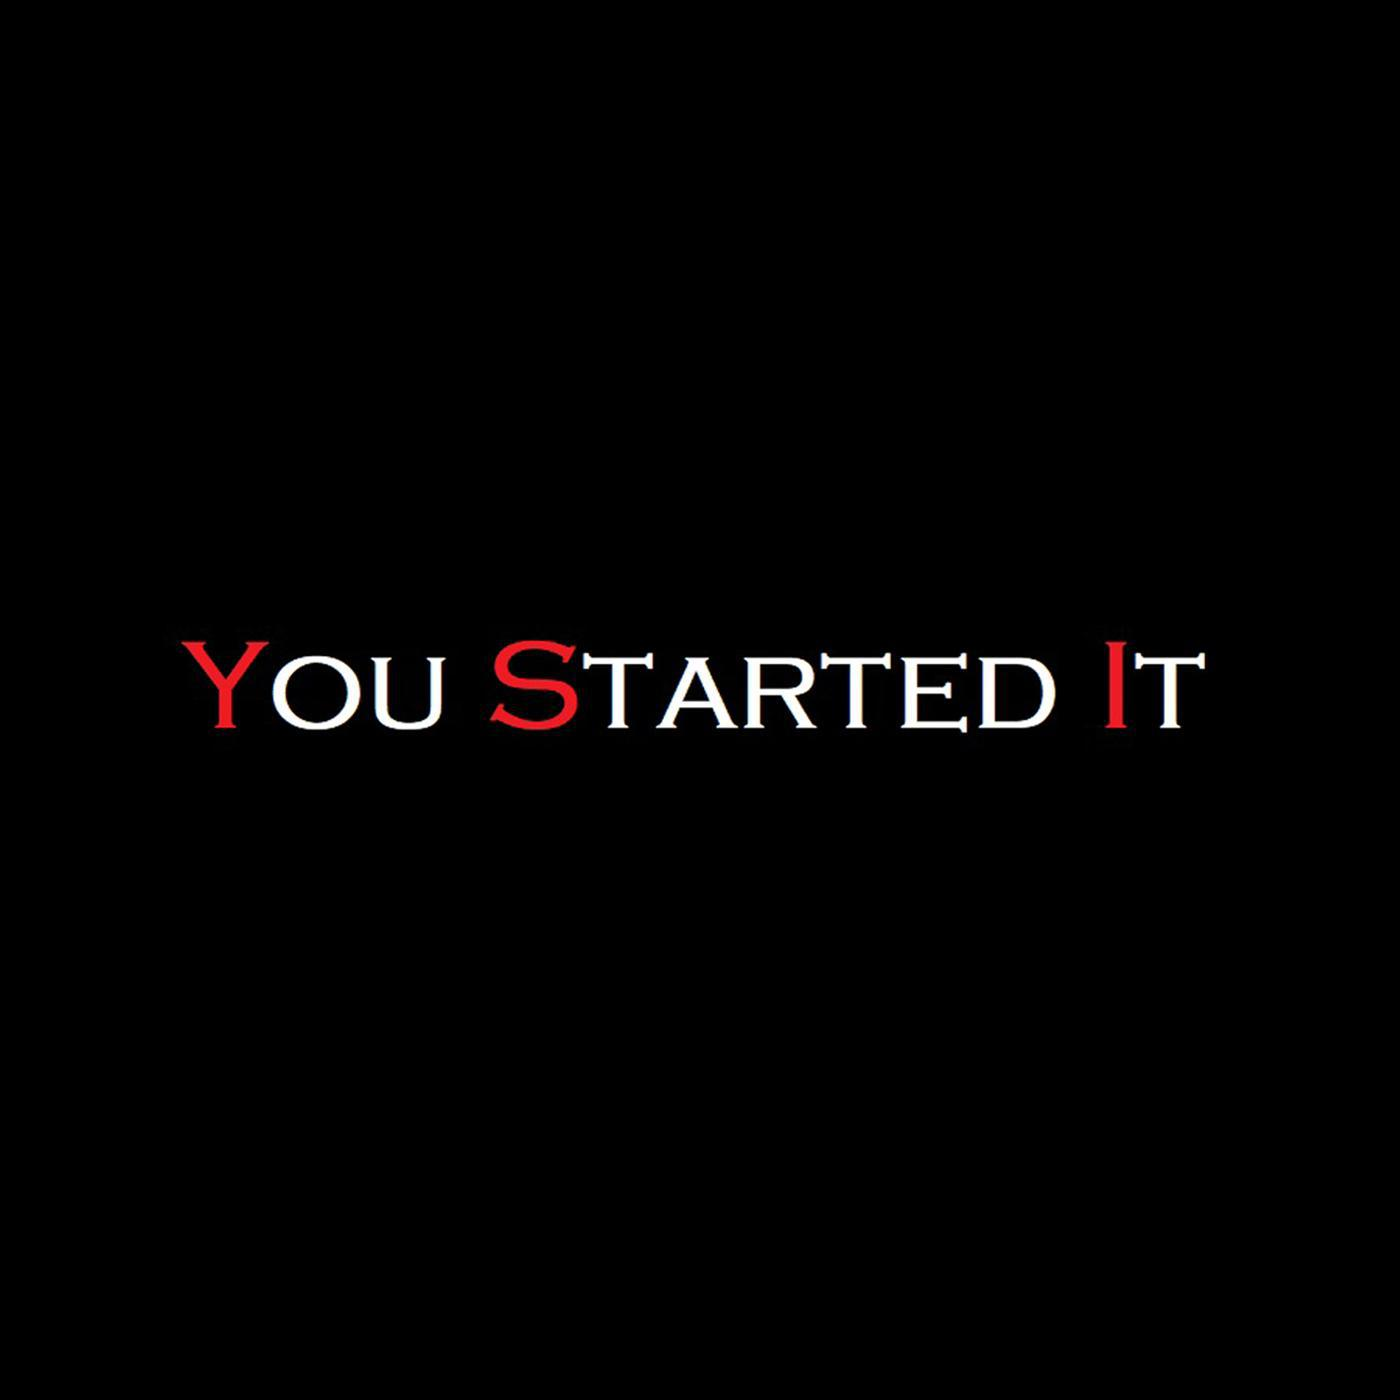 You Started It |